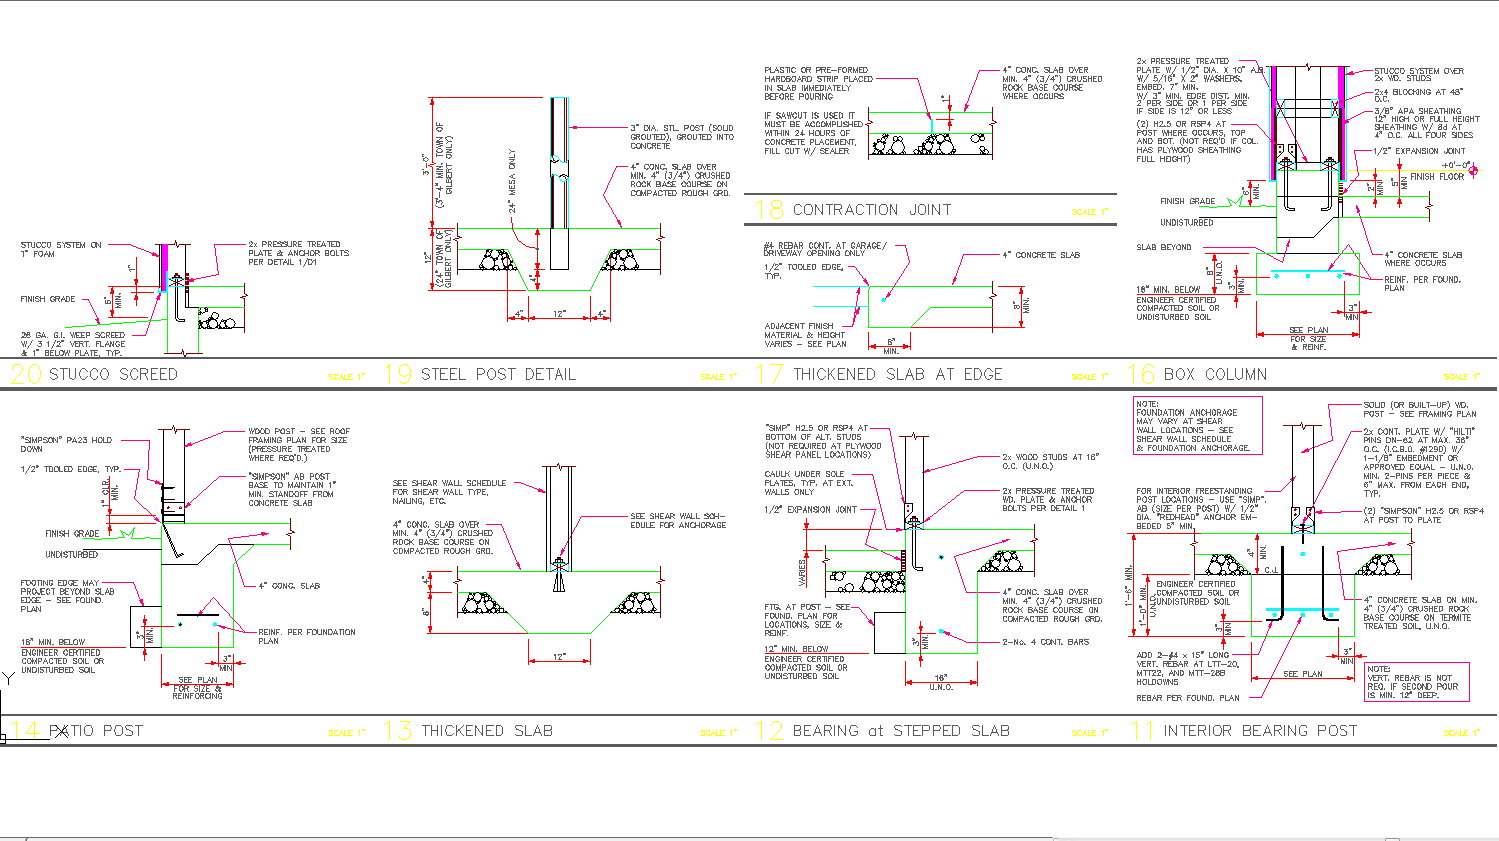 Footing detail cad drawing